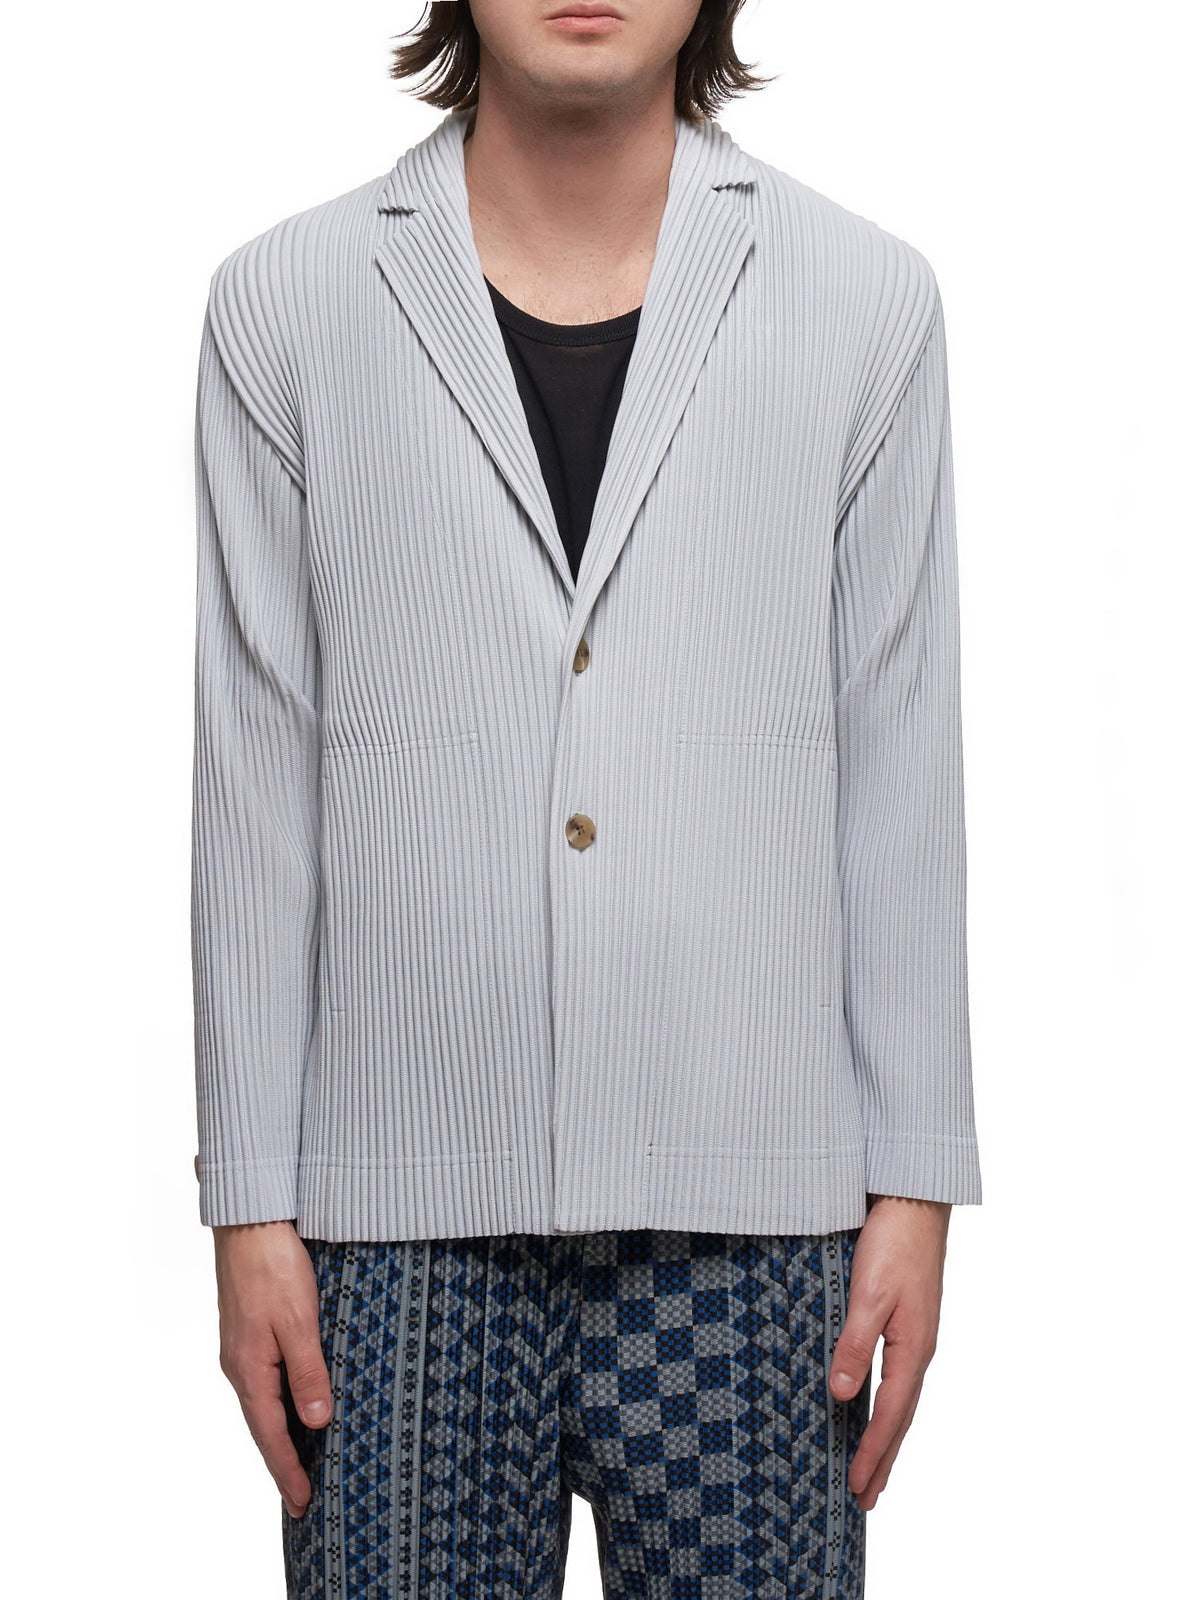 Pleated Blazer (HP06JD201-11-GRAY)